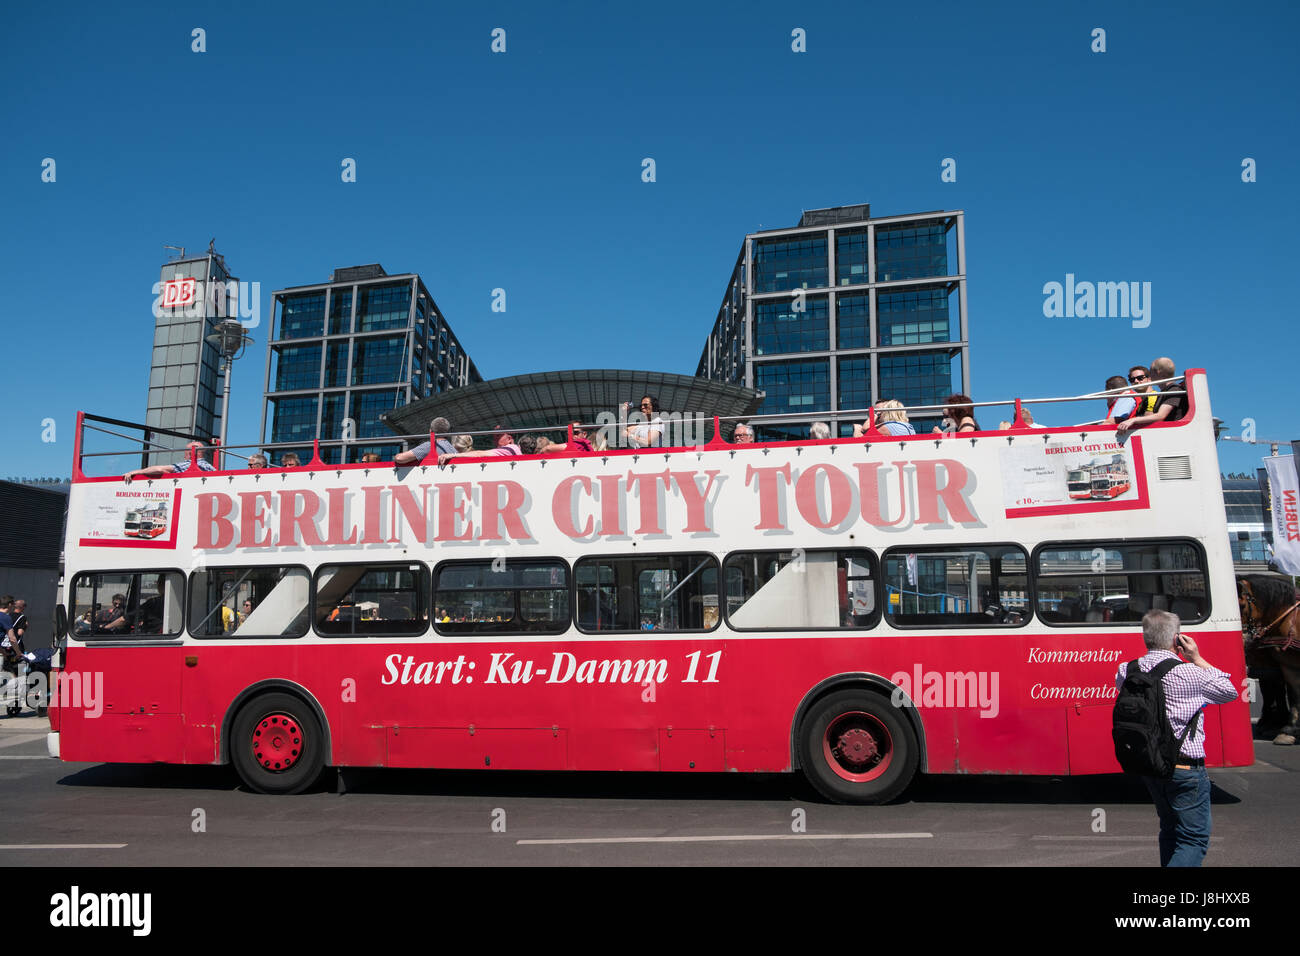 Berlin, Germany - may 27, 2017: A doubledecker, cabriolet sightseeing bus in Berlin with people doing a sightseeing - Stock Image